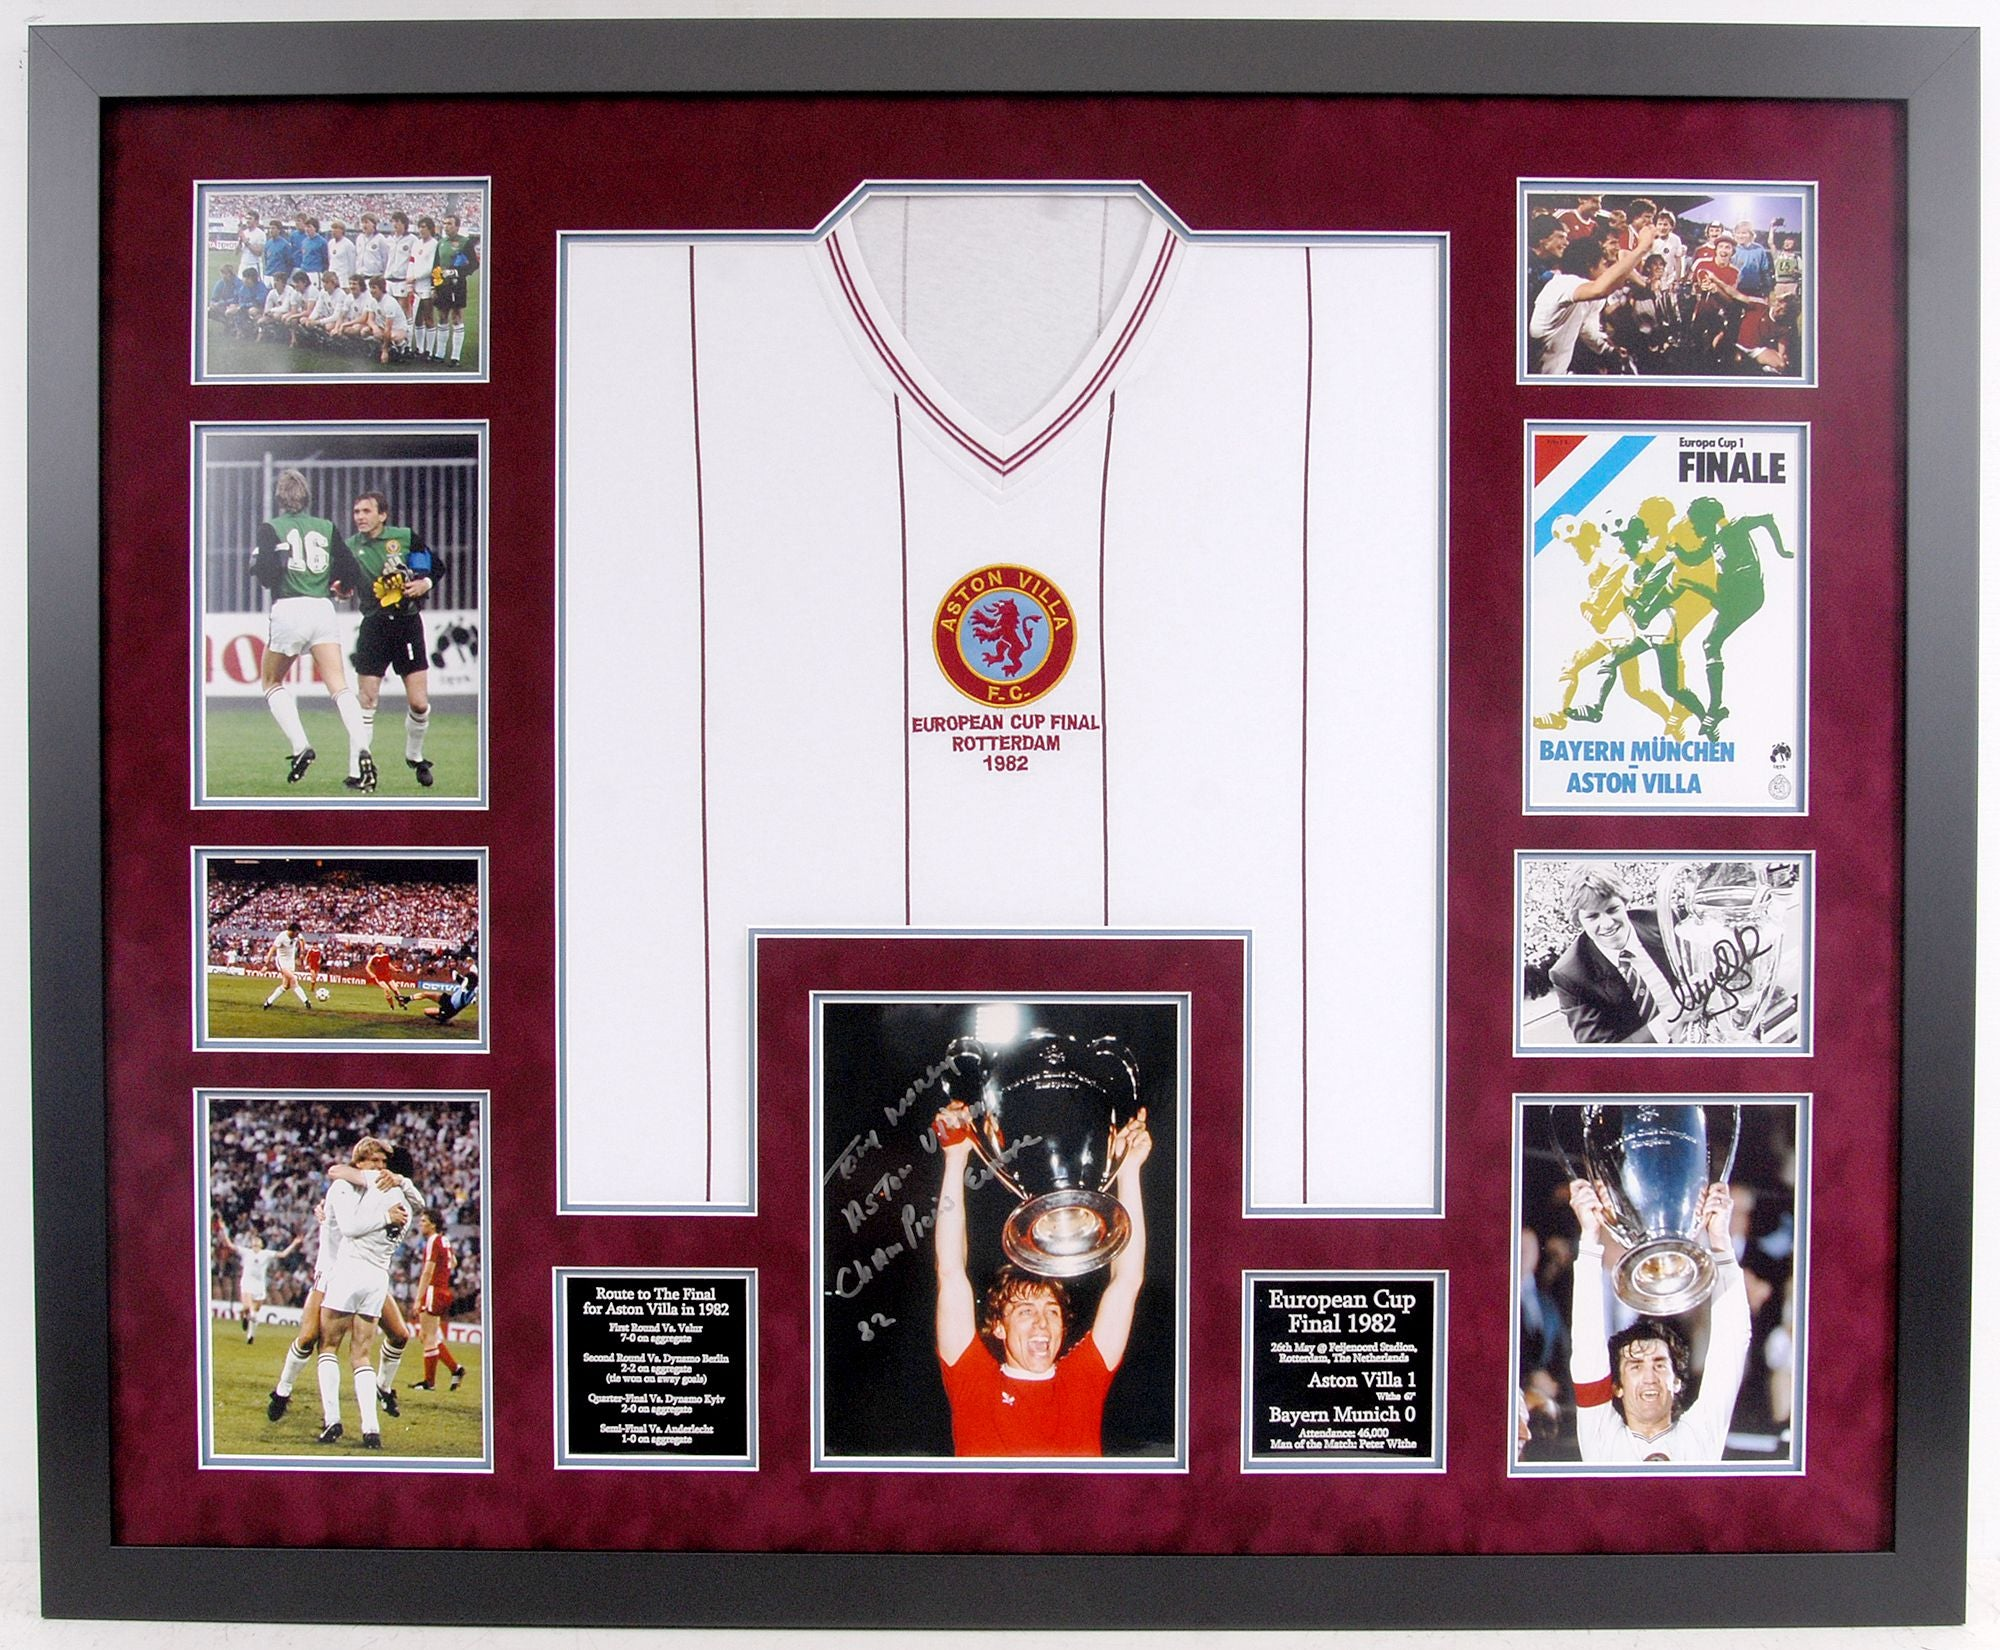 Aston Villa 1982 European Cup Frame - Signed by legends Tony Morley and Nigel Spink